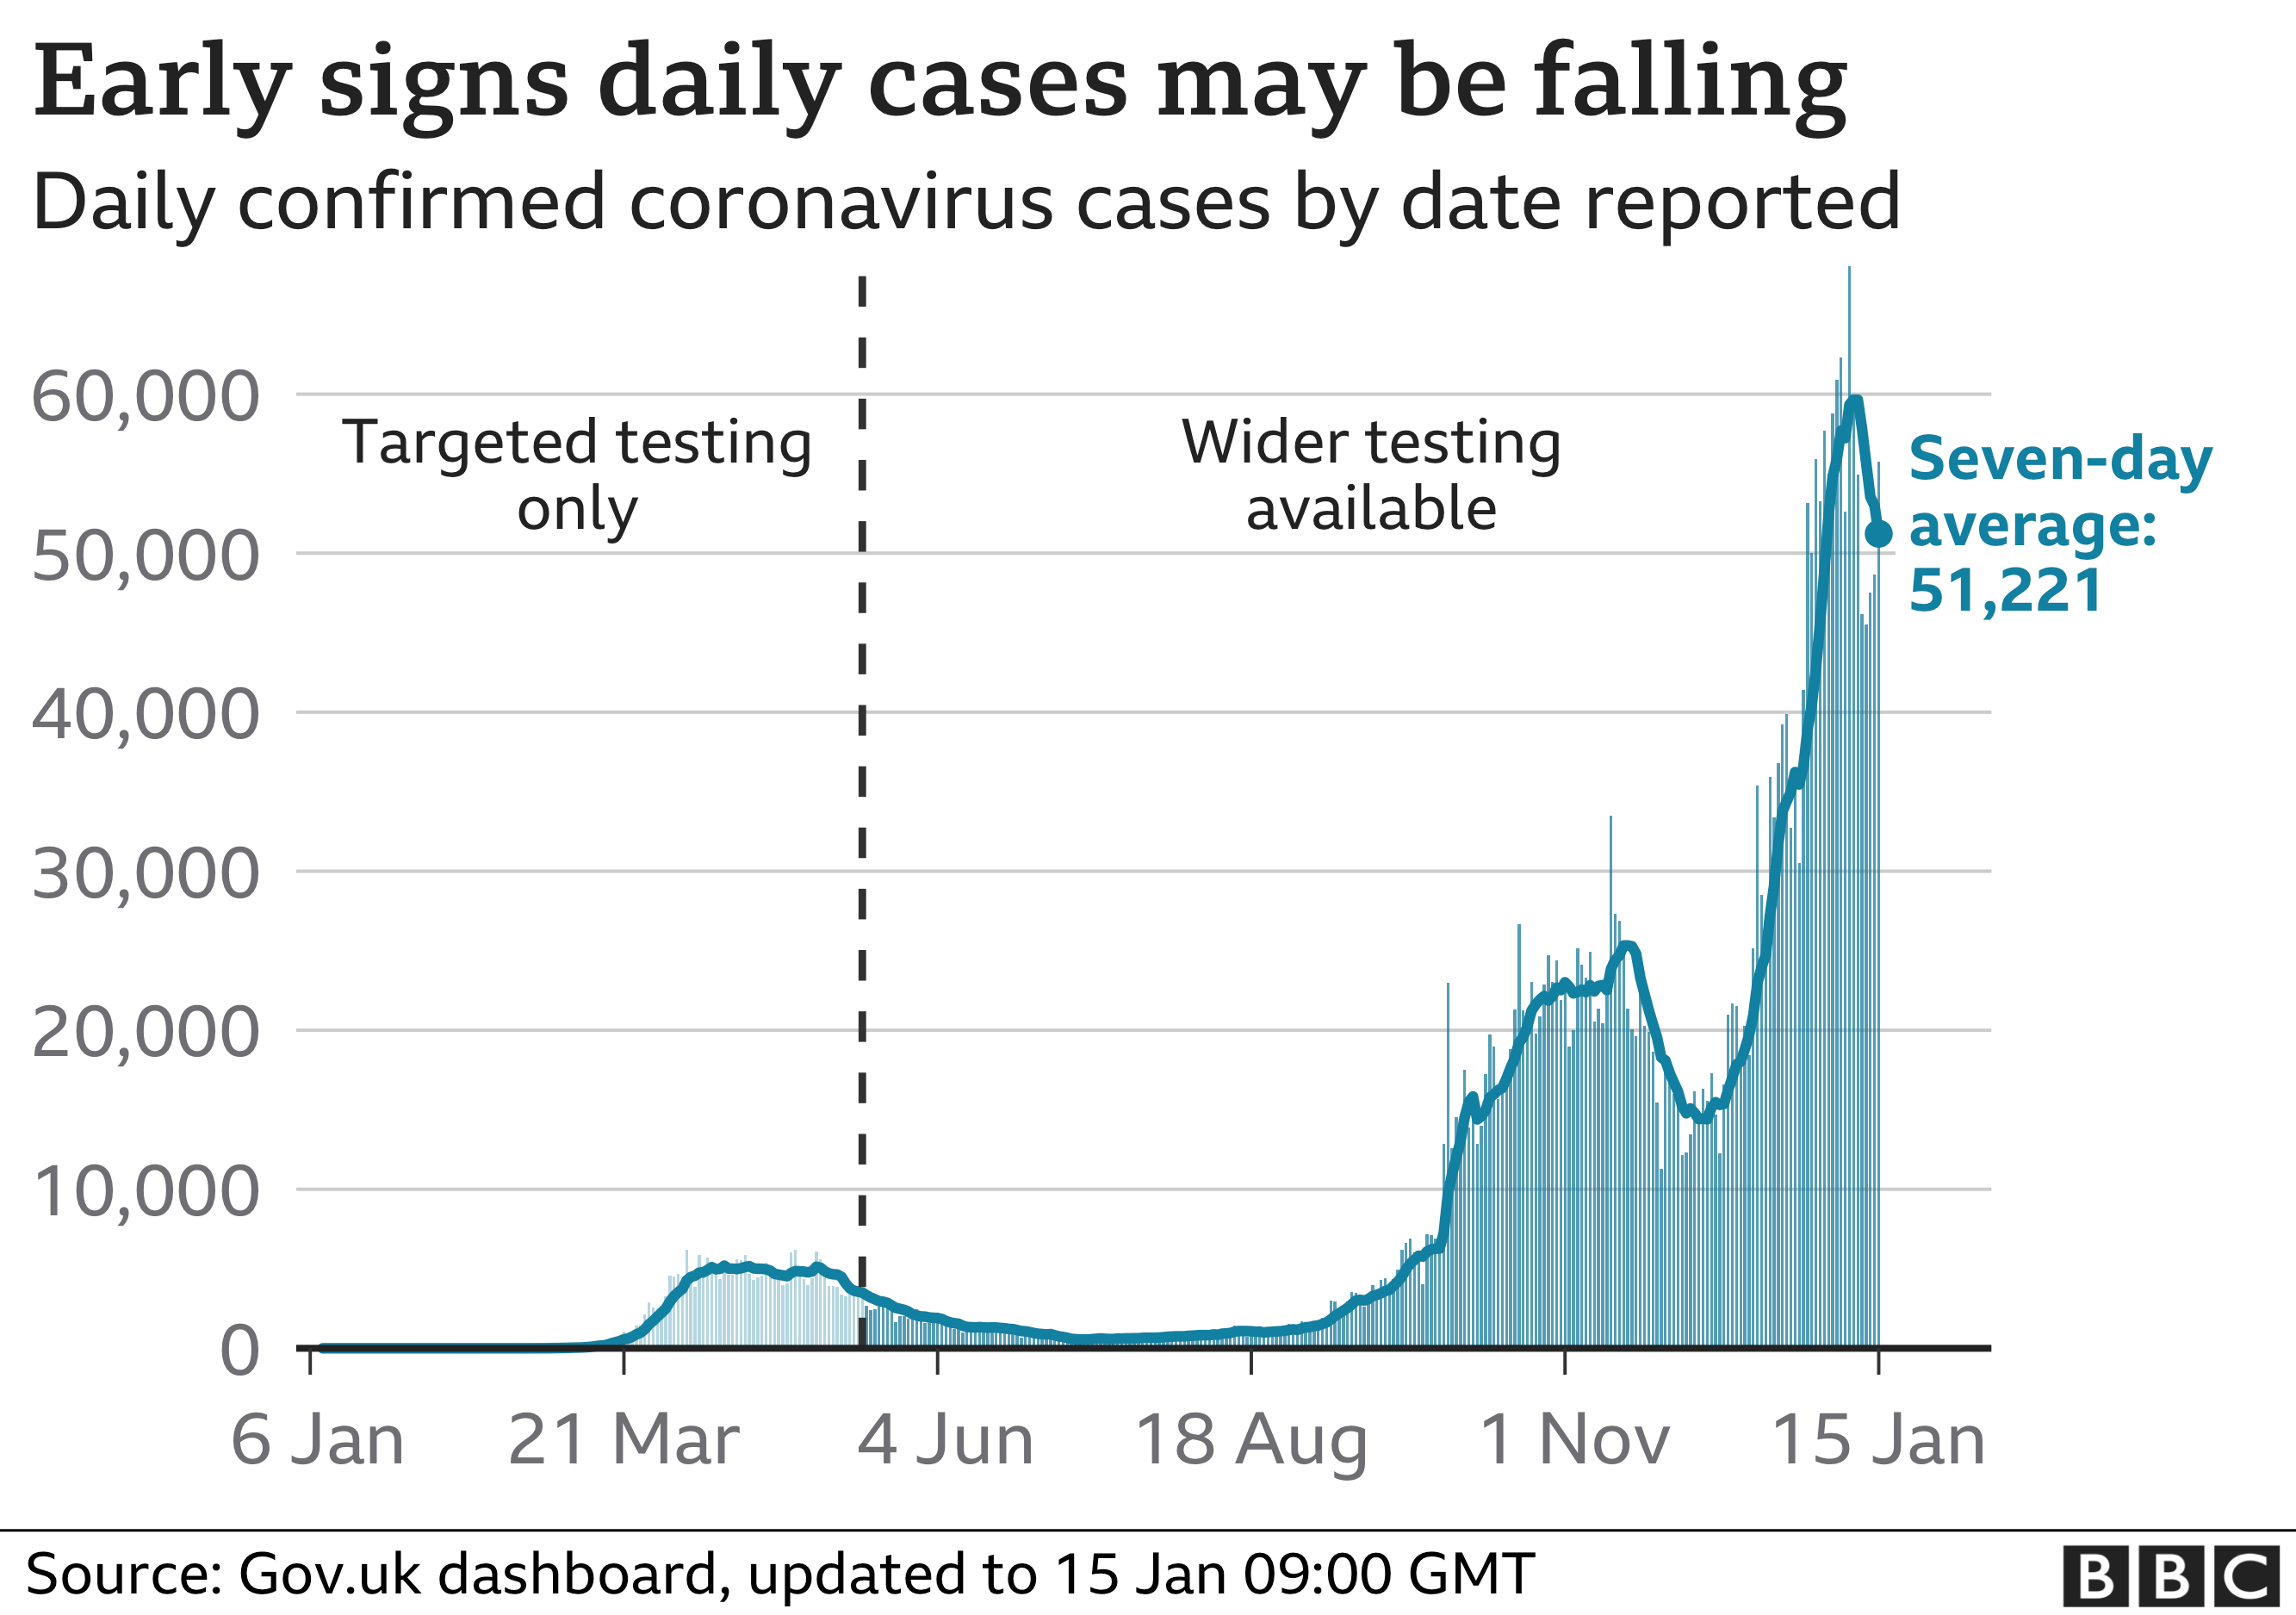 Graph showing cases may be falling in the UK